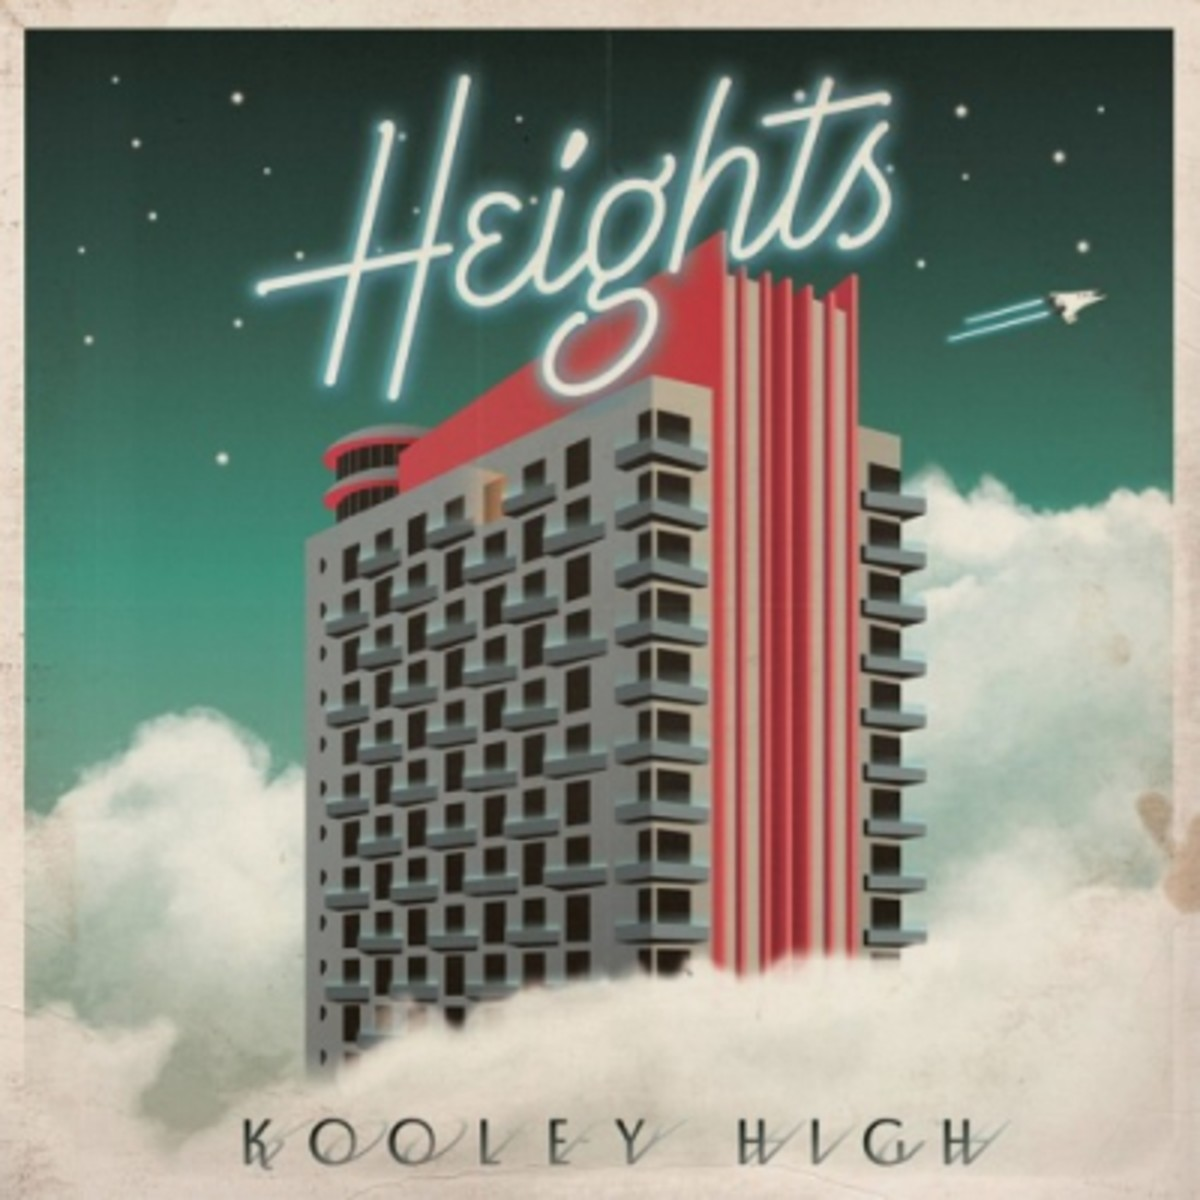 kooley-high-heights.jpg